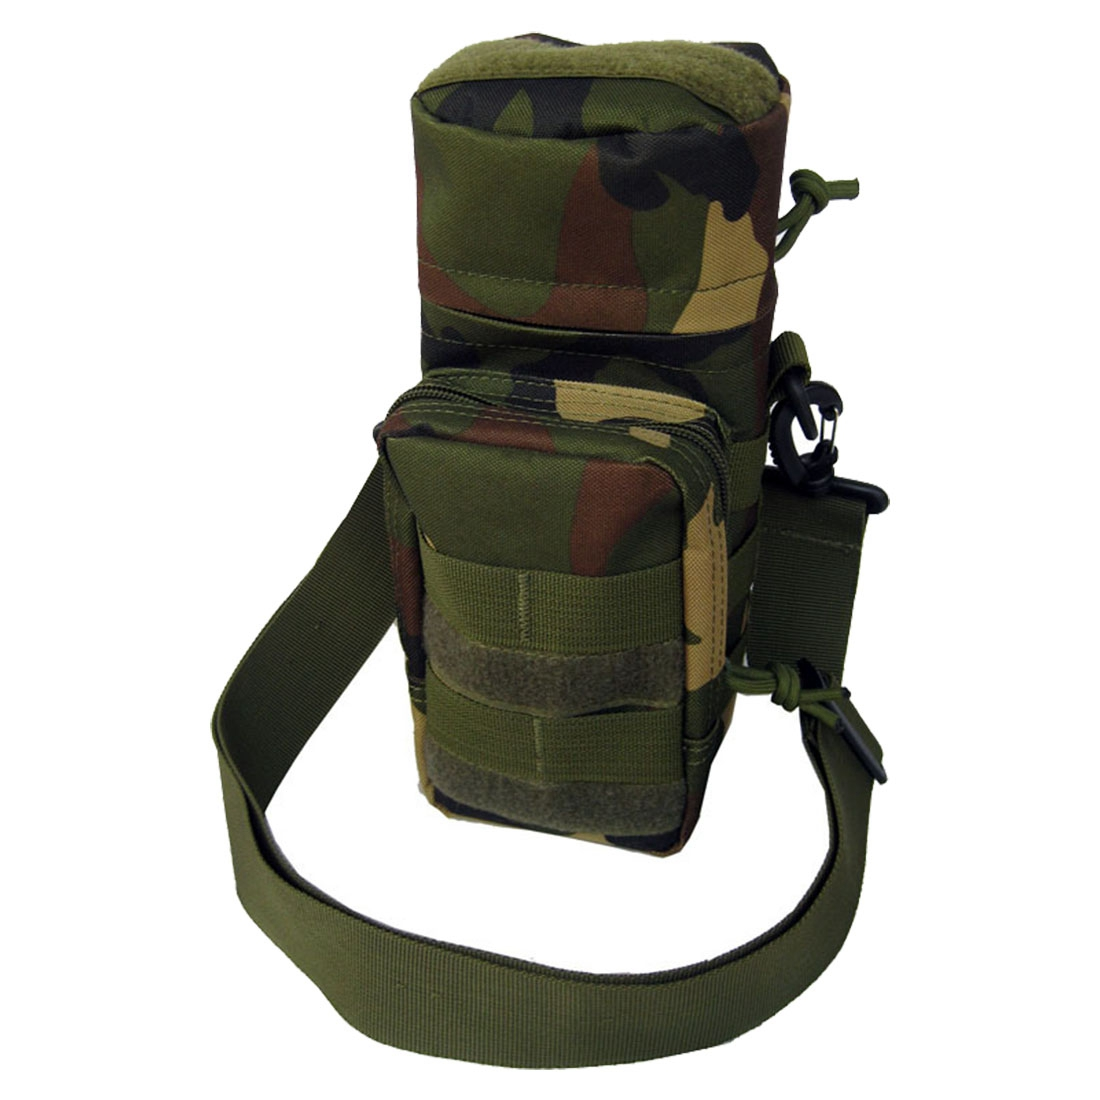 Zipper Water Bottle Utility Medic Pouch Travel Luggage Suitcase